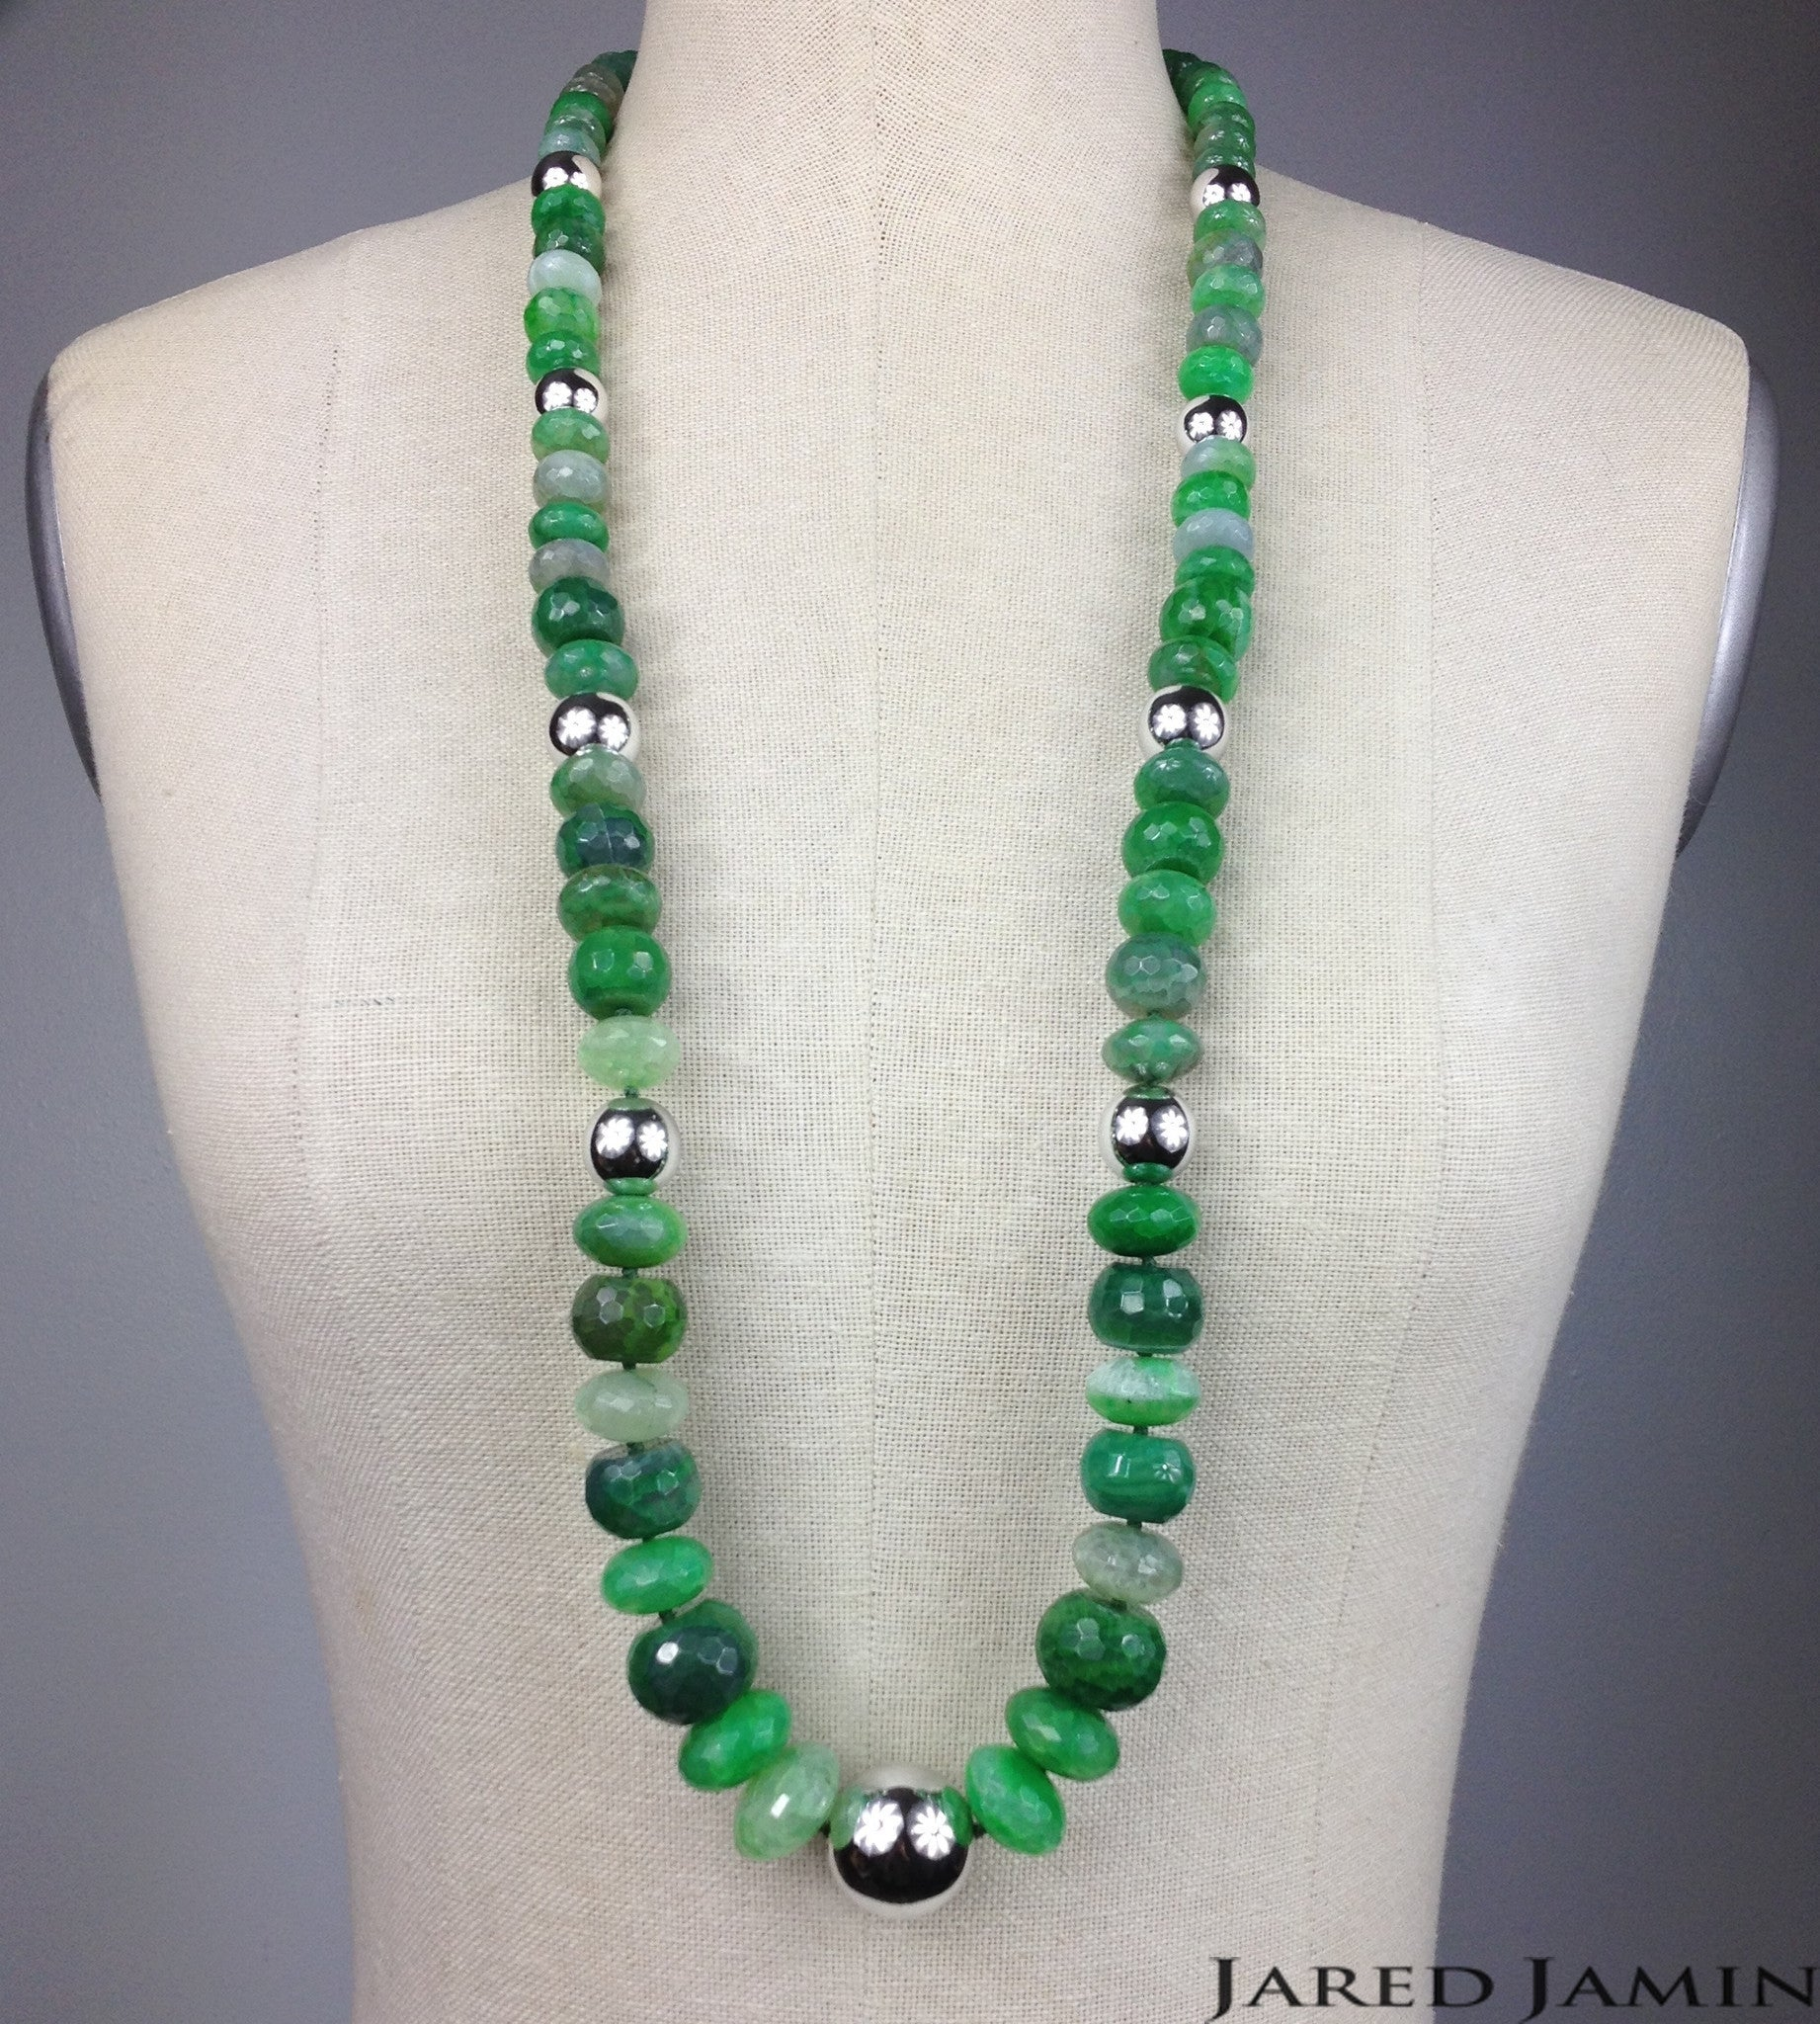 Green Danube Necklace JARED JAMIN